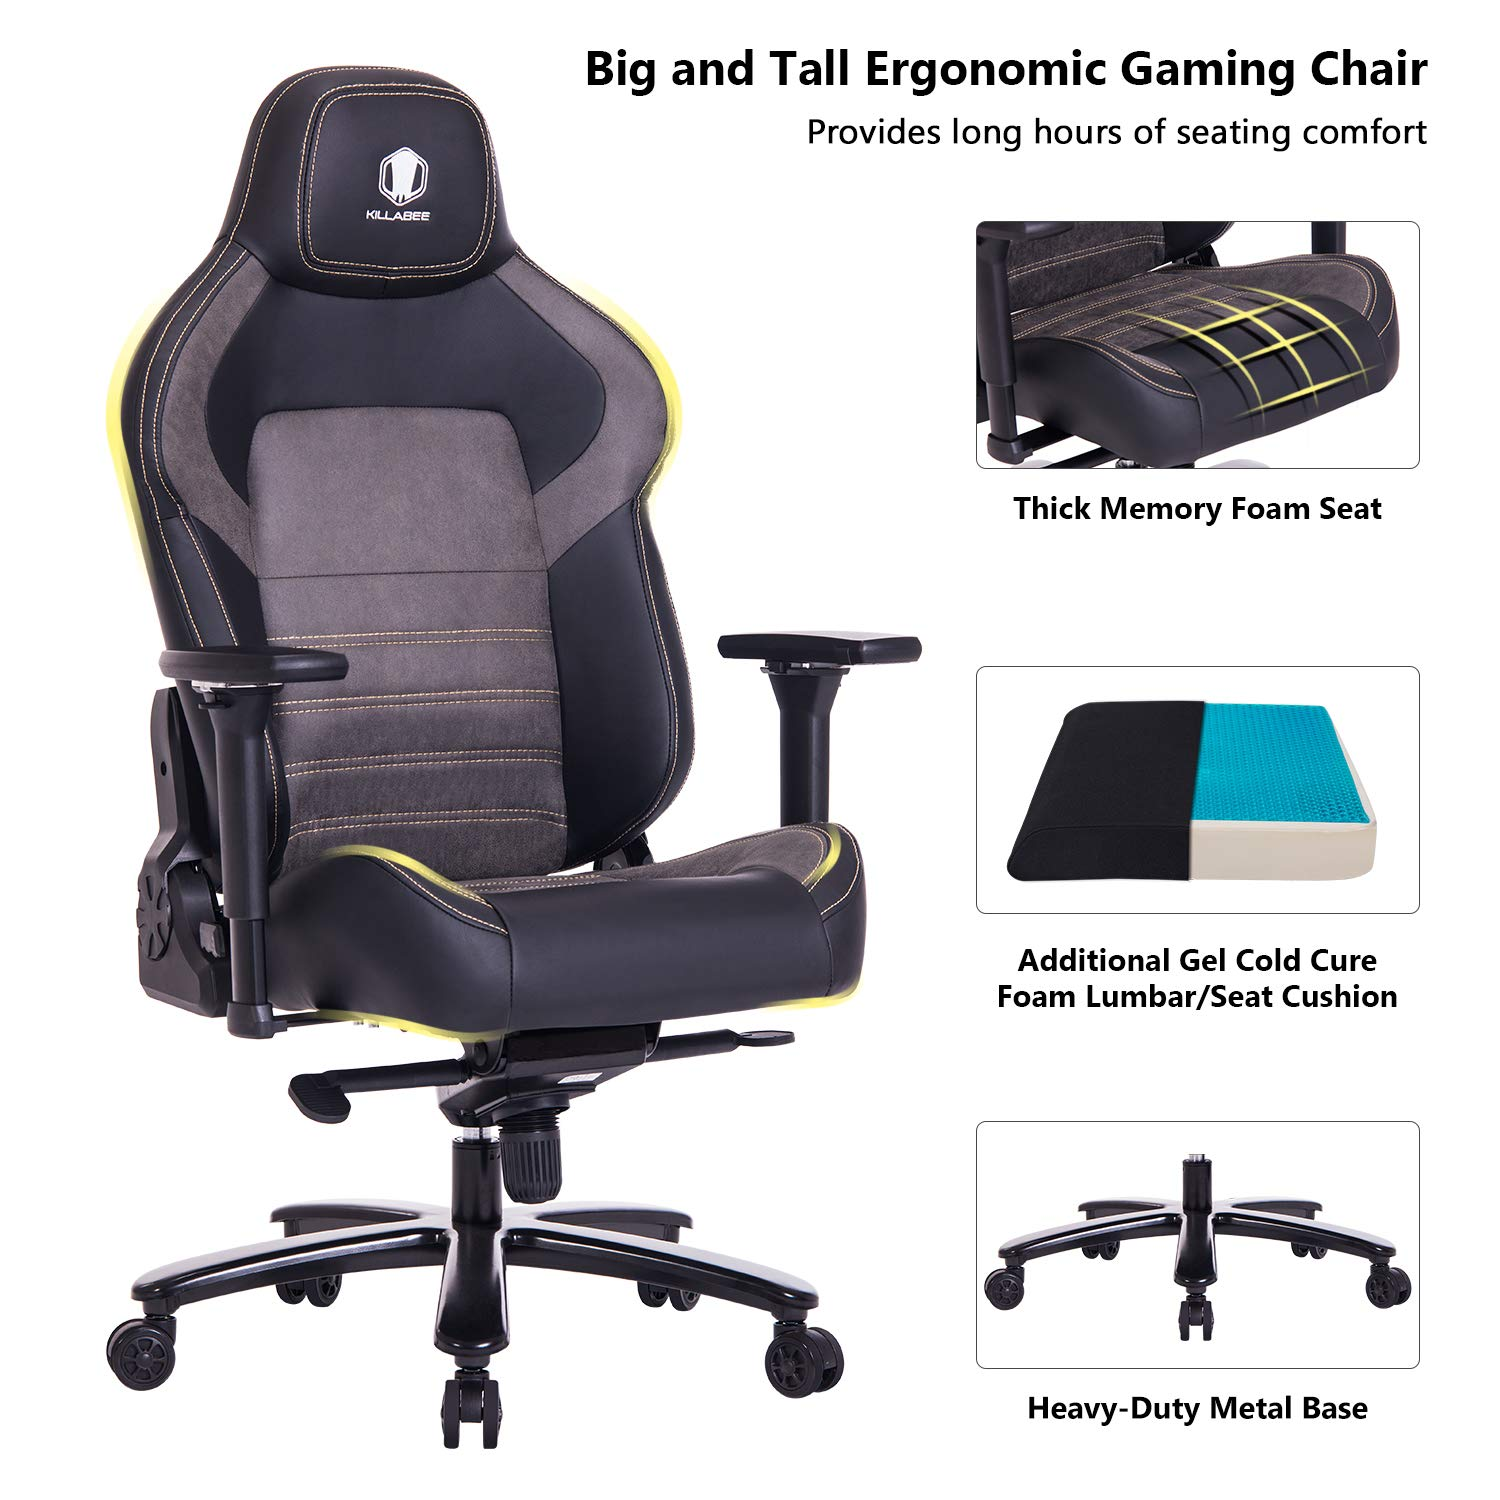 KILLABEE Big and Tall 440lb Memory Foam Gaming Chair - Gel Cold Cure Foam Lumbar/Seat Cushion & 4D Adjustable Arms, Heavy Duty Metal Base, Swivels & Reclines Ideal for Gamers & Office Workers